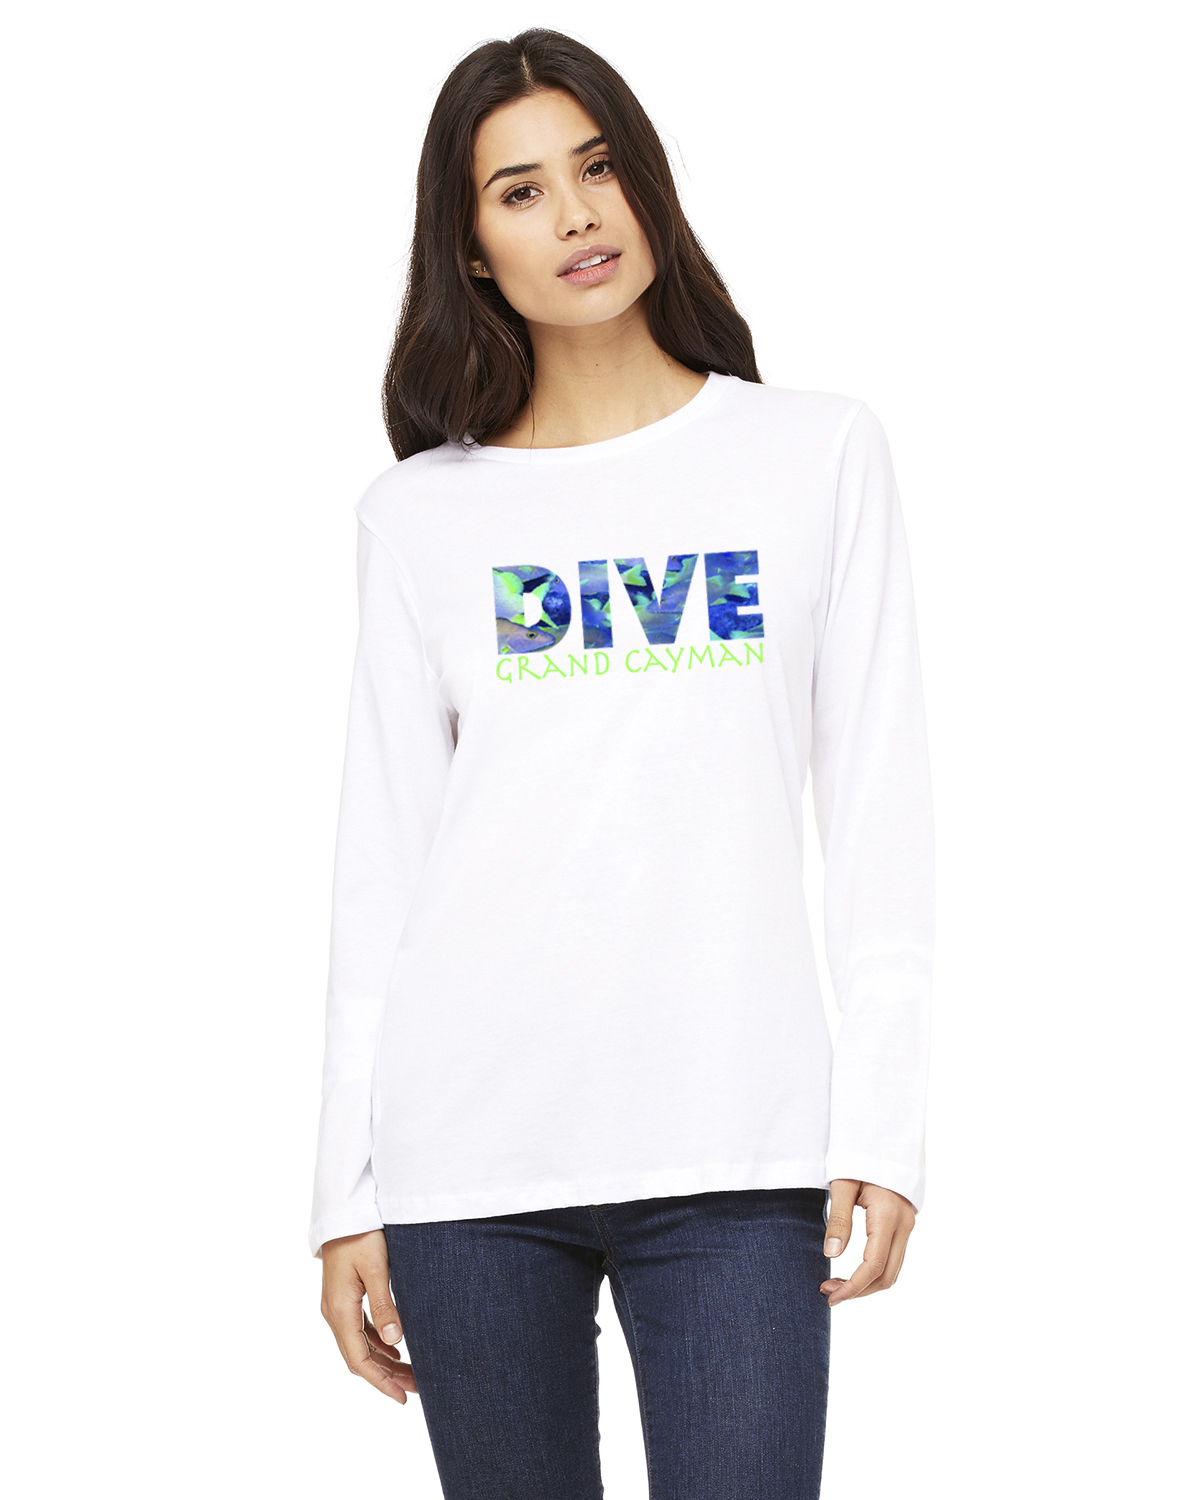 ve DIVE Grand Cayman T-Shirt (white)